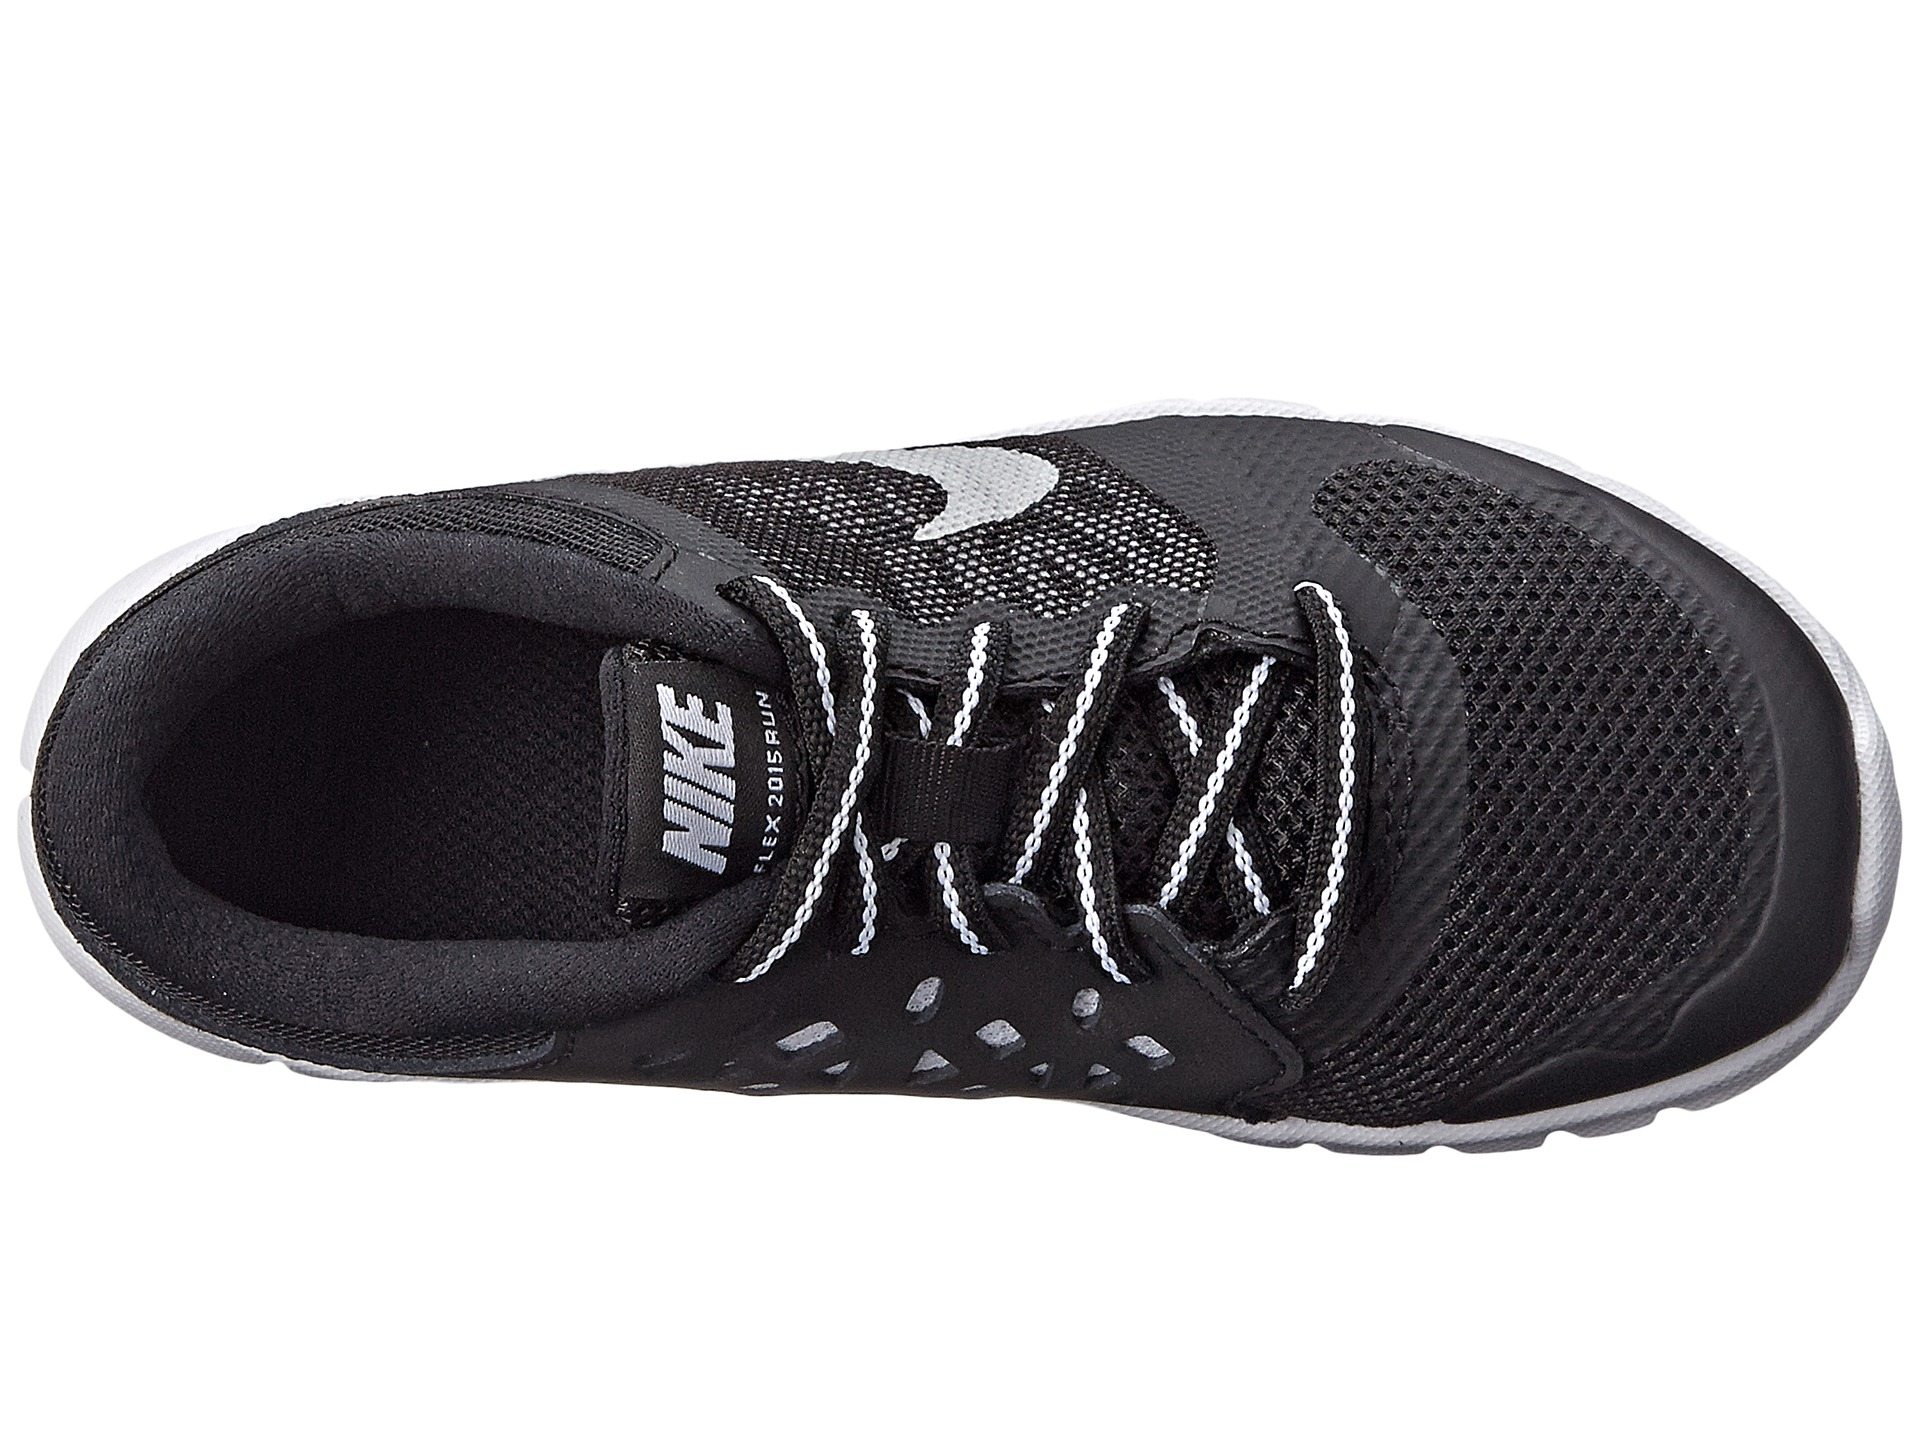 nike free trainer 3.0 mid shield zappos video 3188166 1 multiview